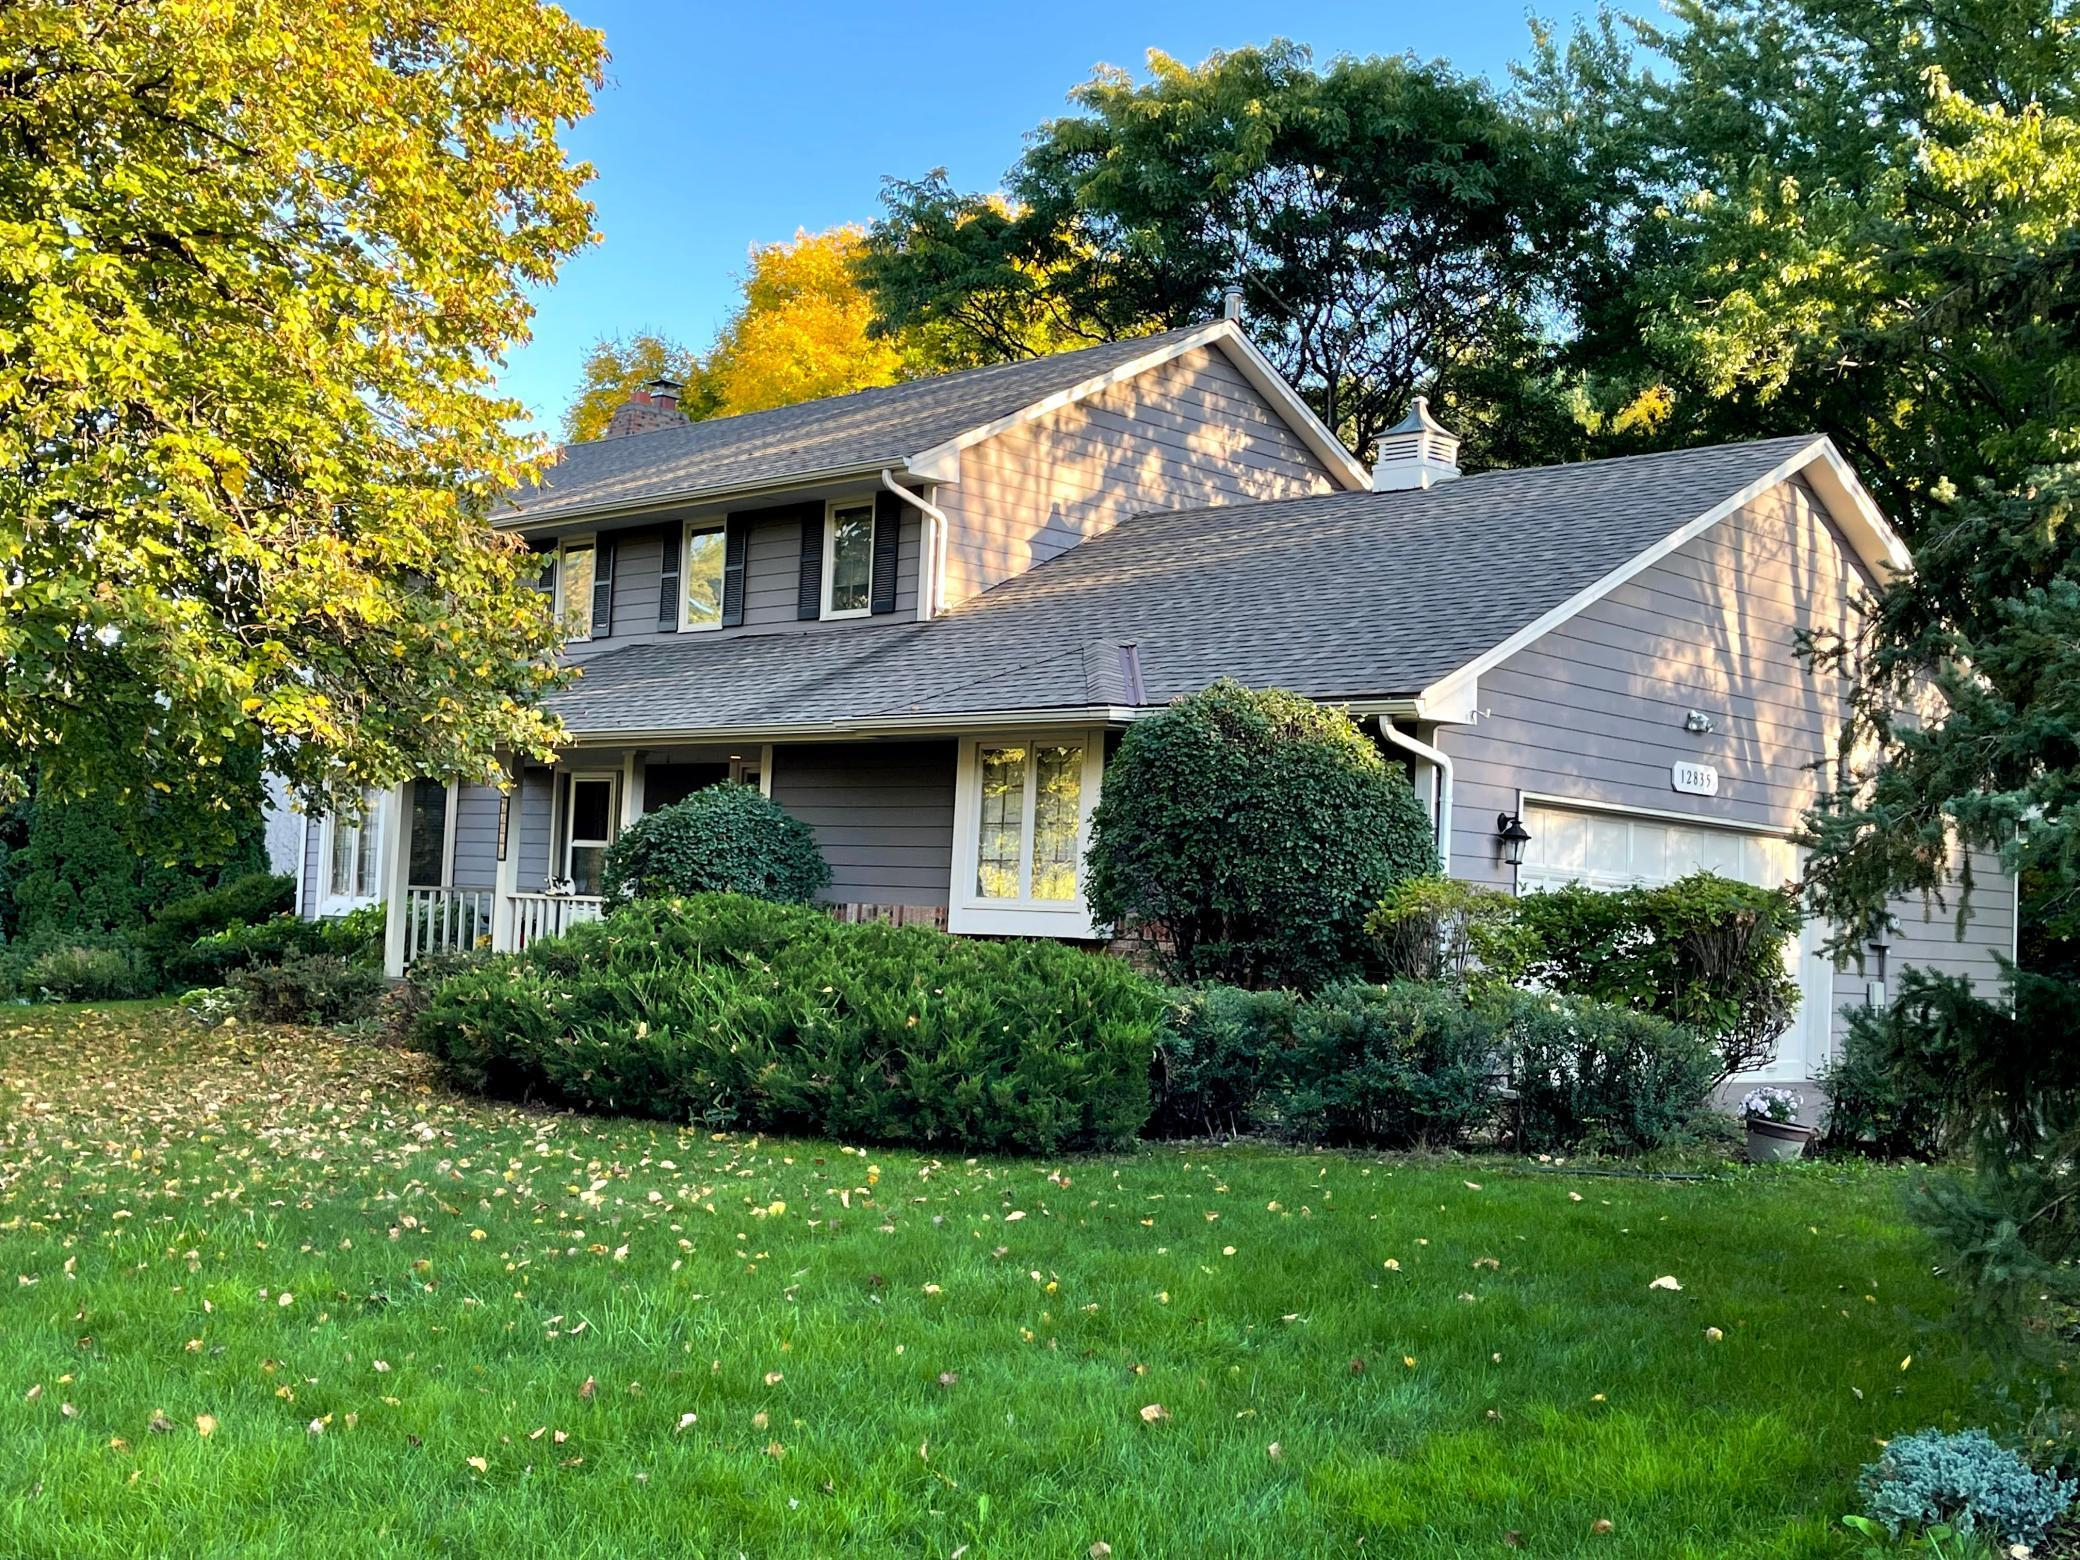 12835 46th Avenue, Plymouth, Minnesota 55442, 4 Bedrooms Bedrooms, ,2 BathroomsBathrooms,Residential,For Sale,46th,NST6108179